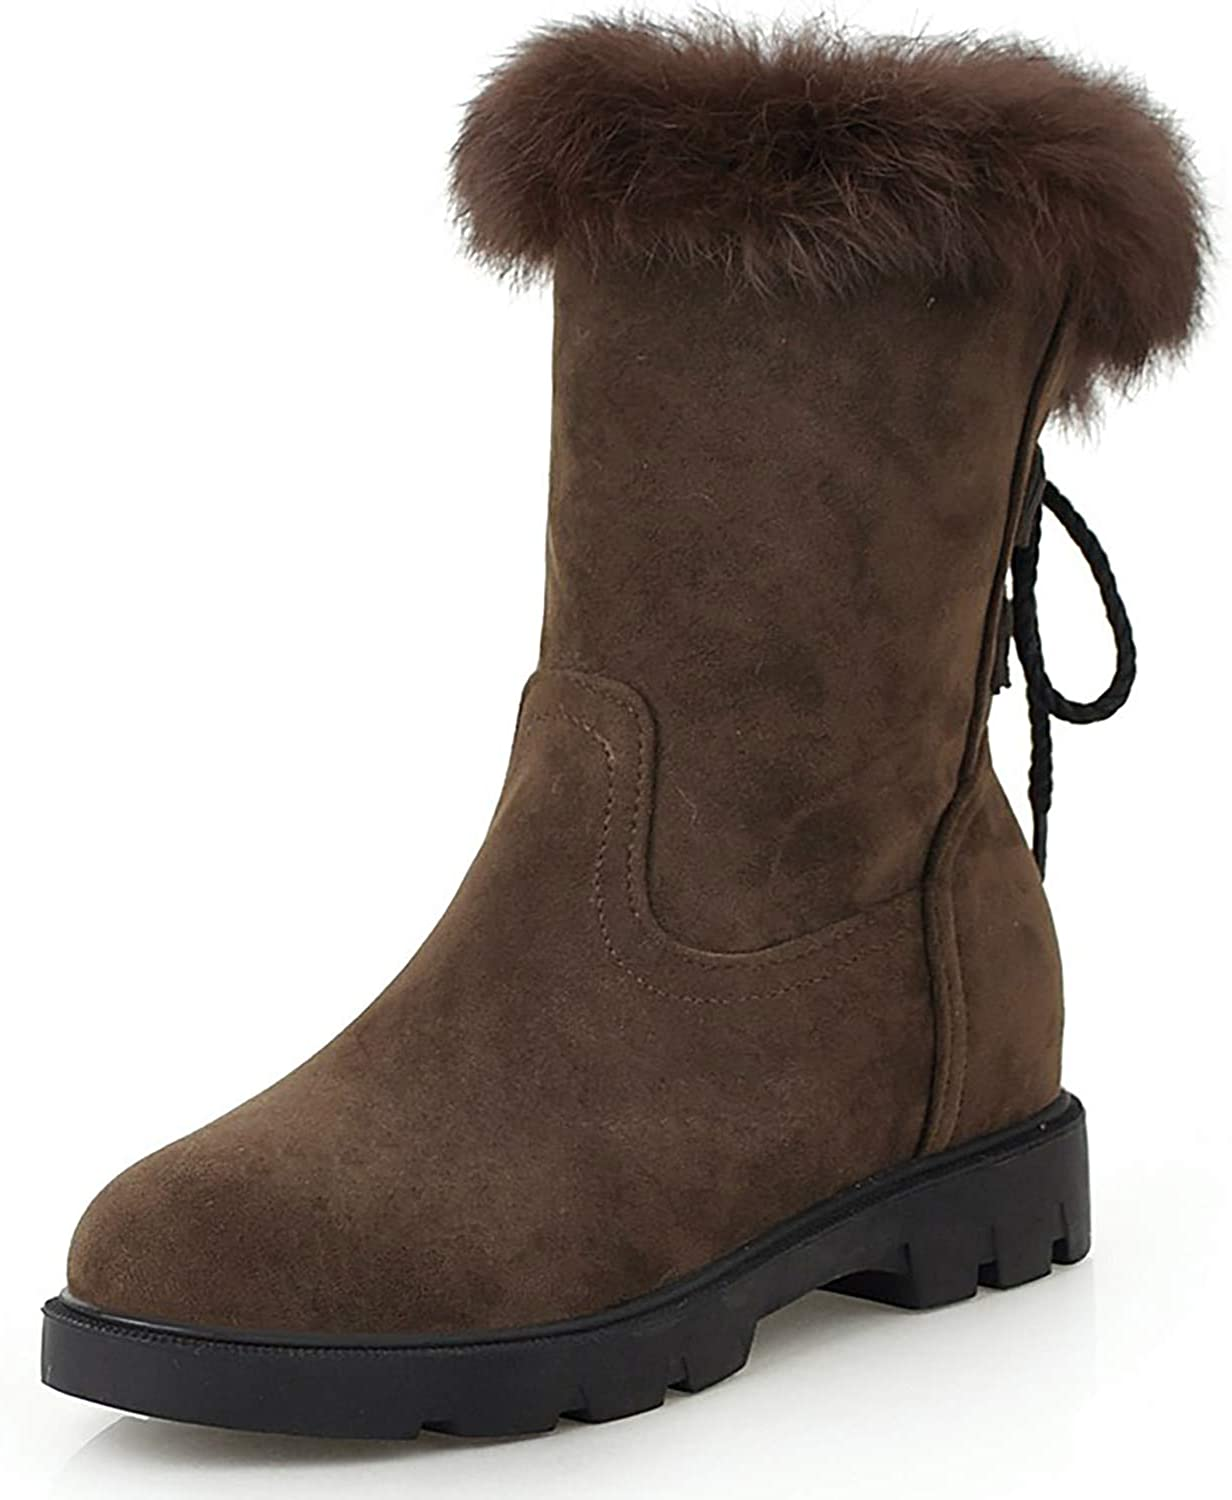 HEETIST Women's Faux Fur Lined Mid-Calf Boots Low Heel Lace-up Winter Warm Booties